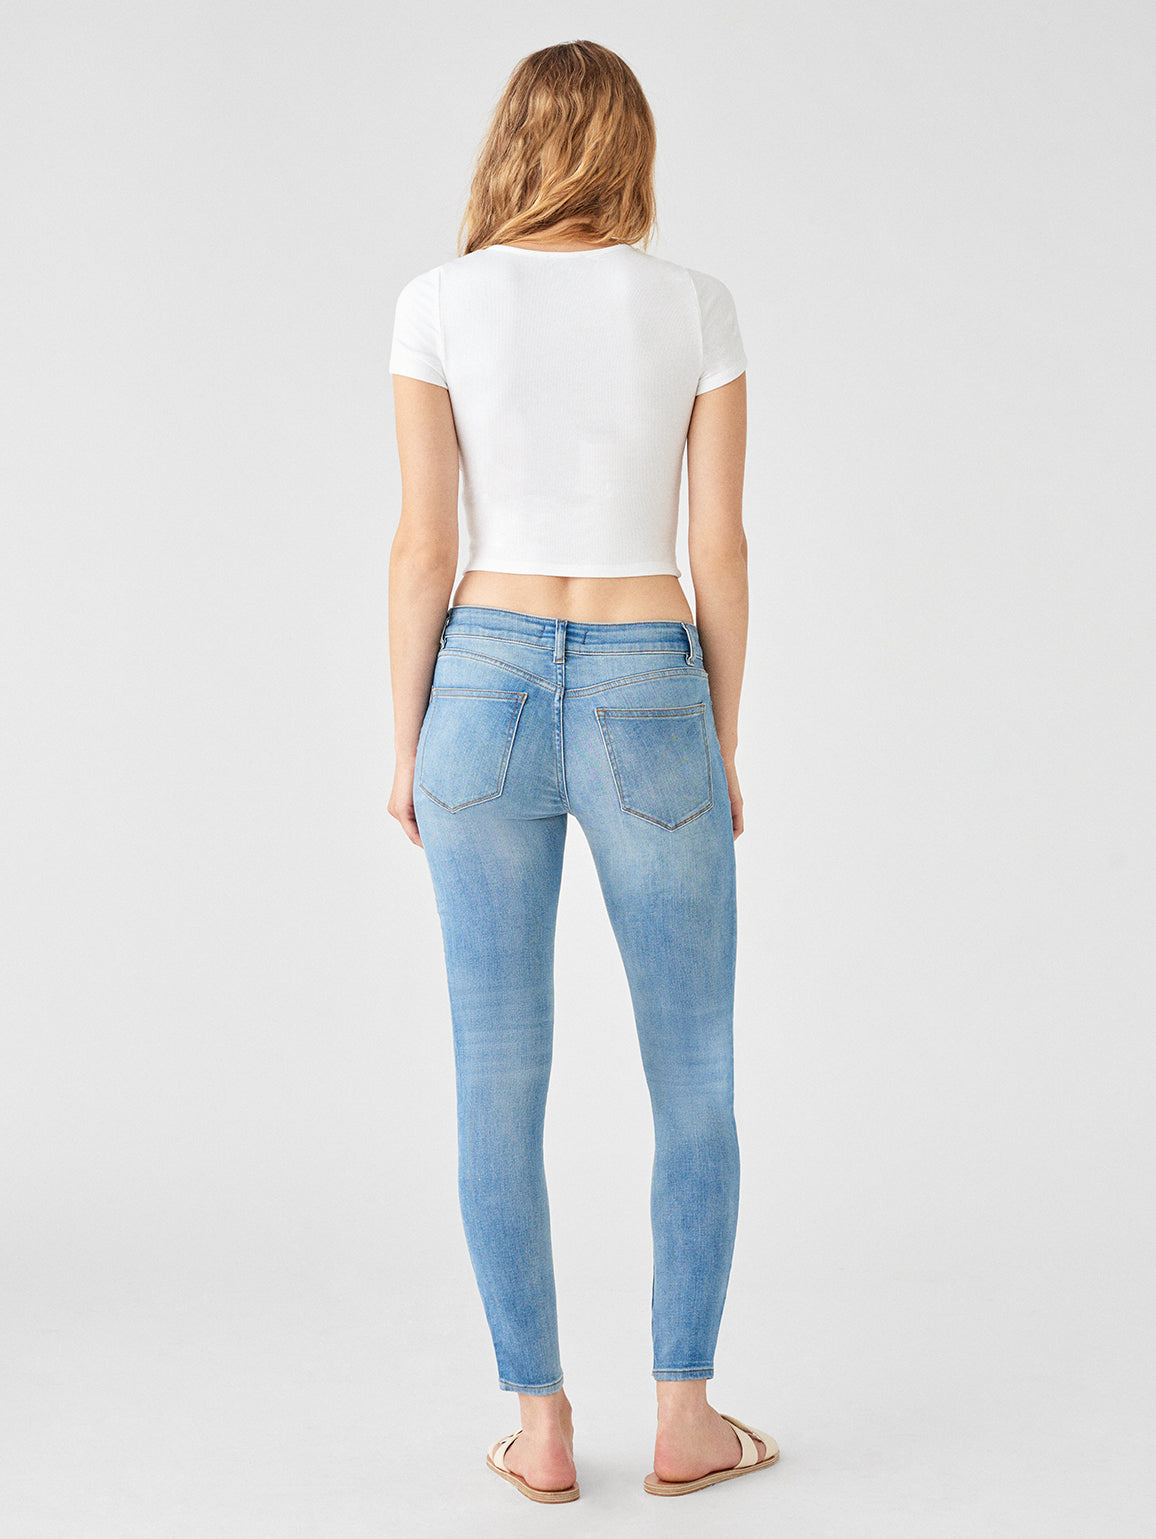 Women - Emma Low Rise Skinny | Lorain - DL1961